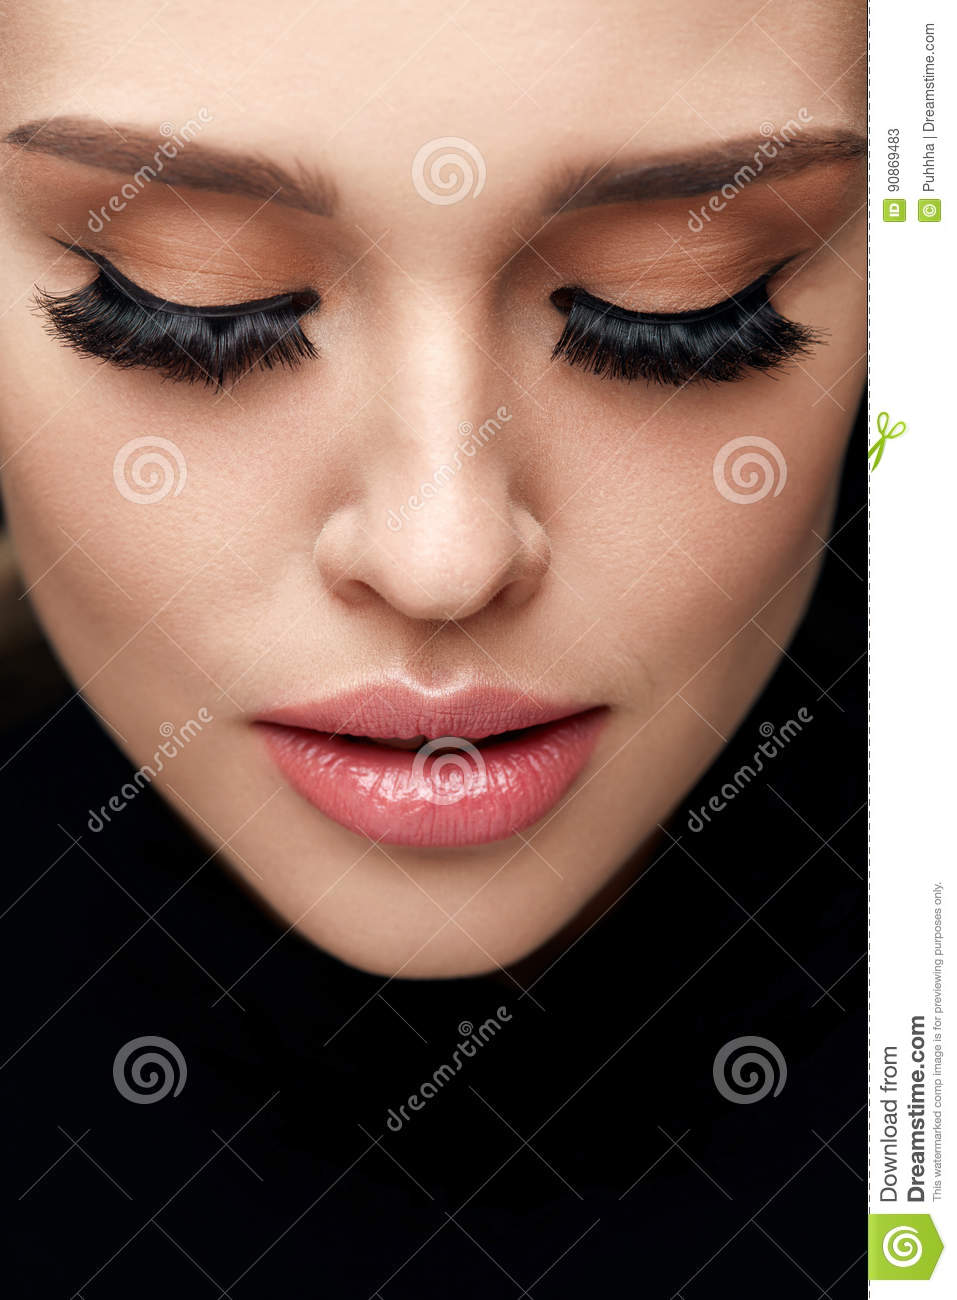 6765de0d29f Long Black Eyelashes. Portrait Of Beautiful Woman Face With Closed Eyes And  Thick Fake Eye Lashes. Closeup Of Girl With Smooth Skin, Fresh Facial Makeup .